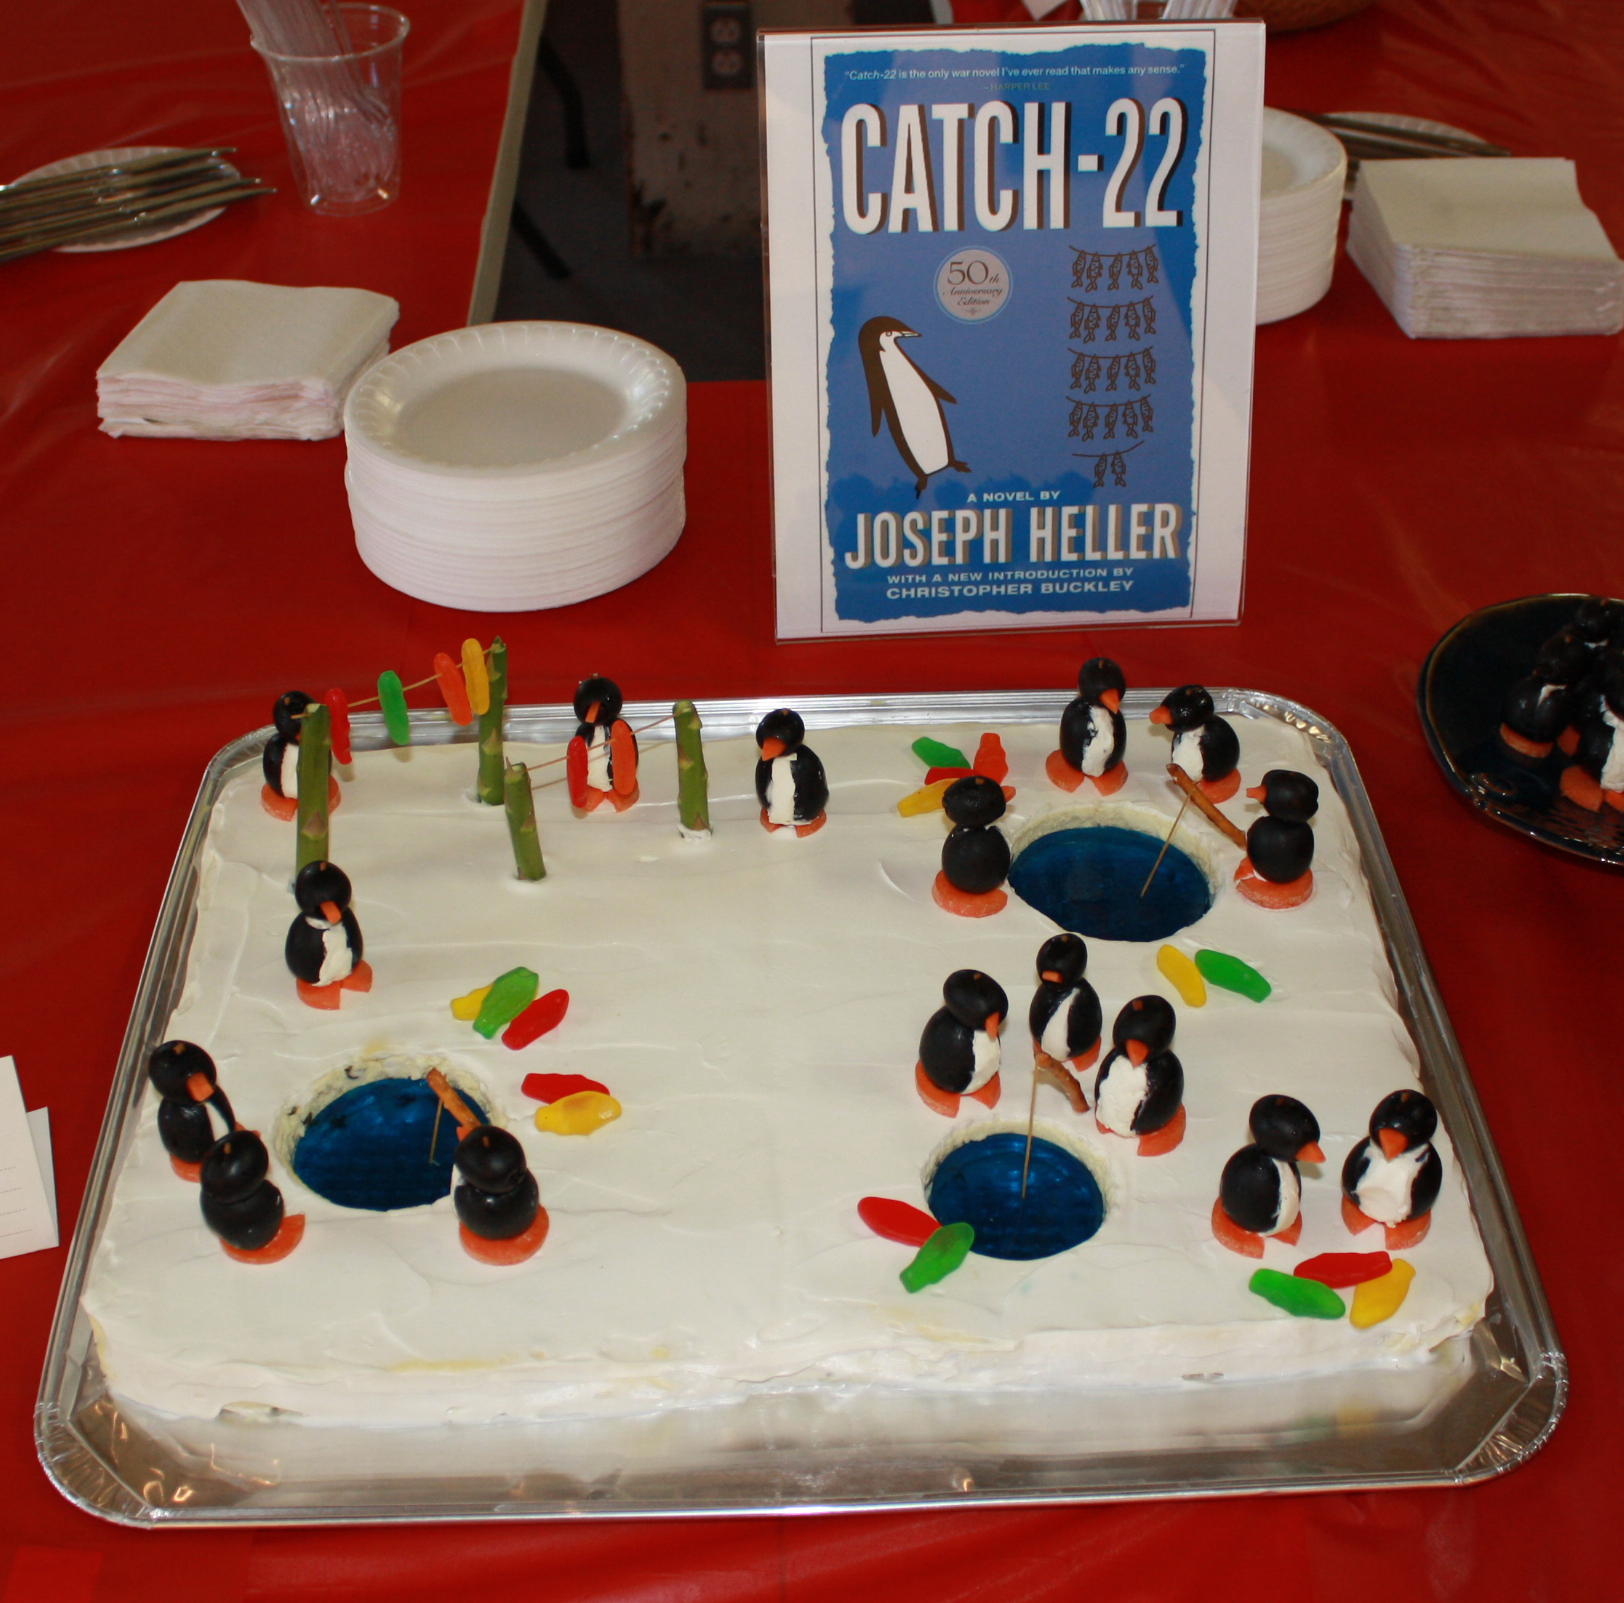 """PEOPLE'S CHOICE: """"Catch-22,"""" by Joseph Heller, created by The Tiara Book Club, Edible Book 2012."""